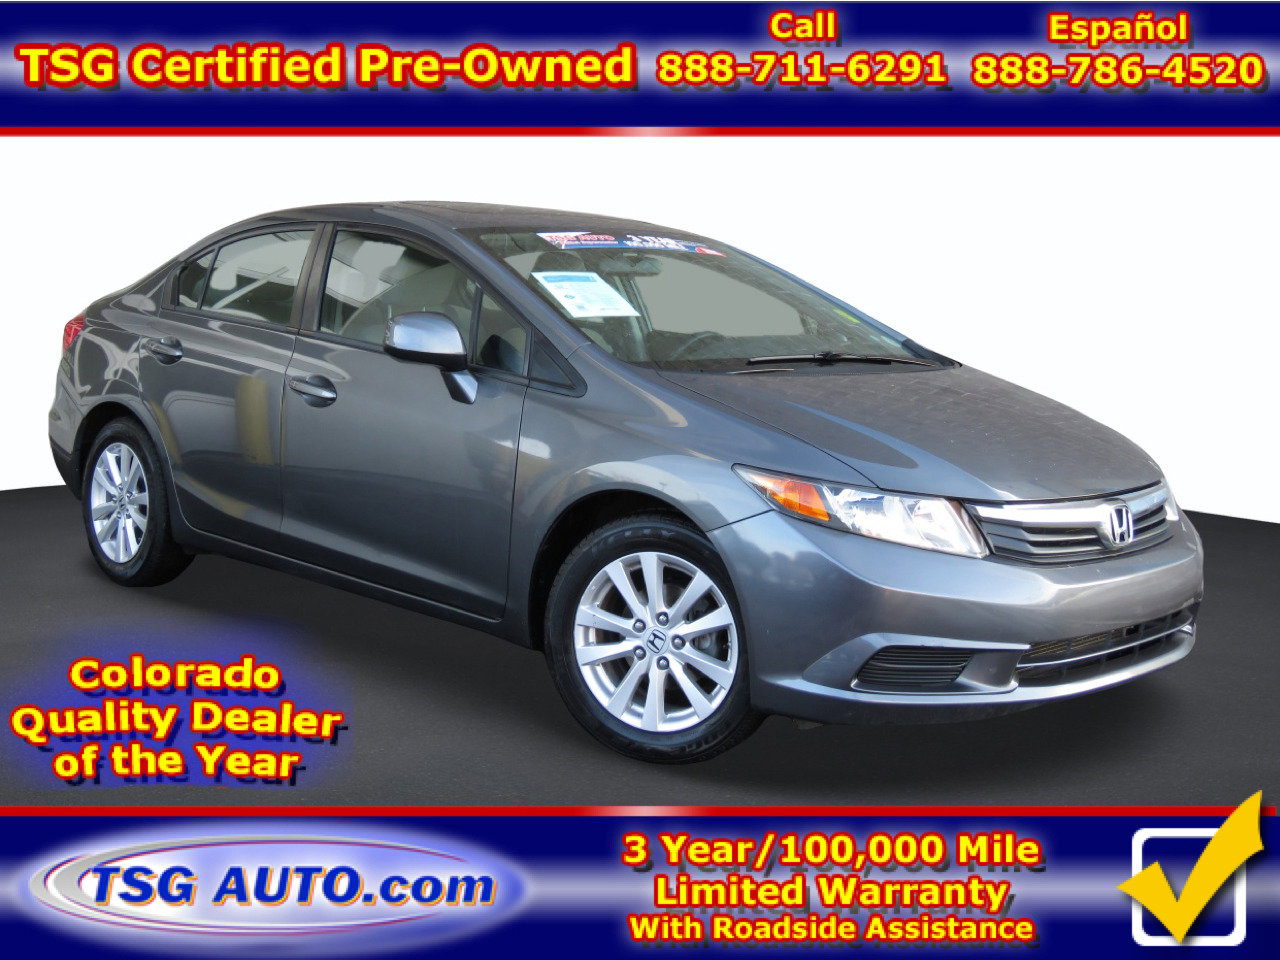 2012 Honda Civic EX Sedan image